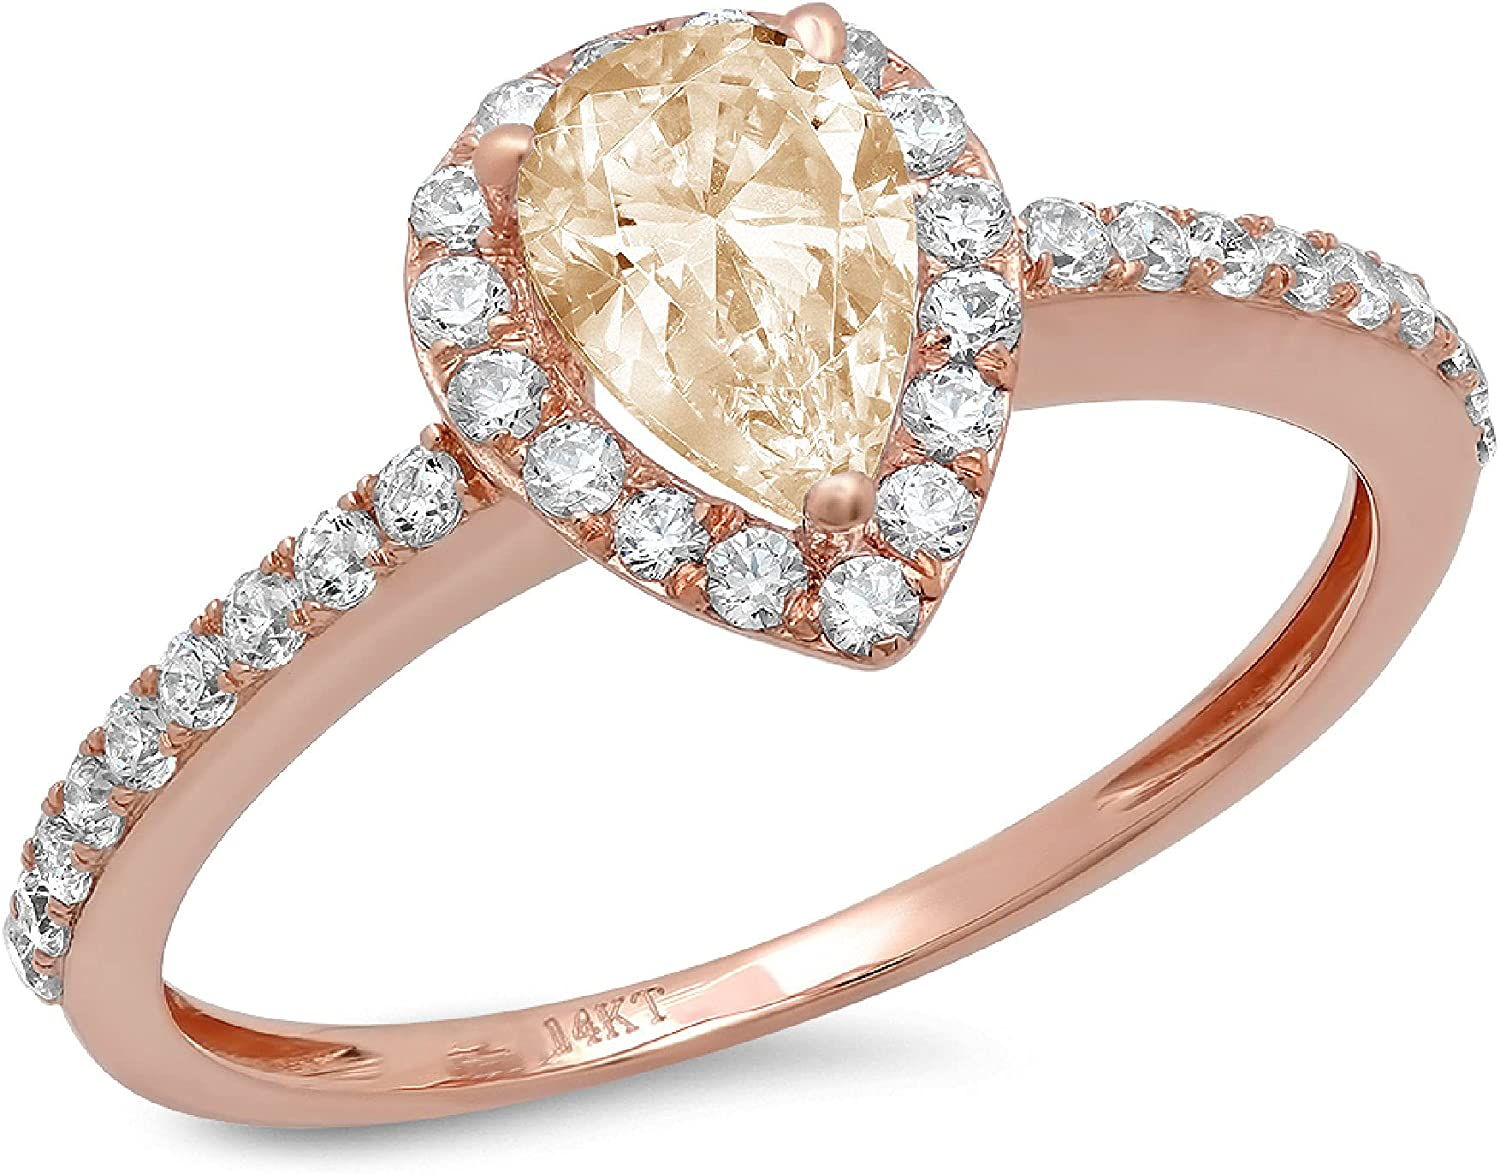 1.27 Brilliant Pear Cut Solitaire with accent Stunning Genuine VVS1 Simulated Yellow Moissanite Modern Promise Designer Ring 18K Rose Gold